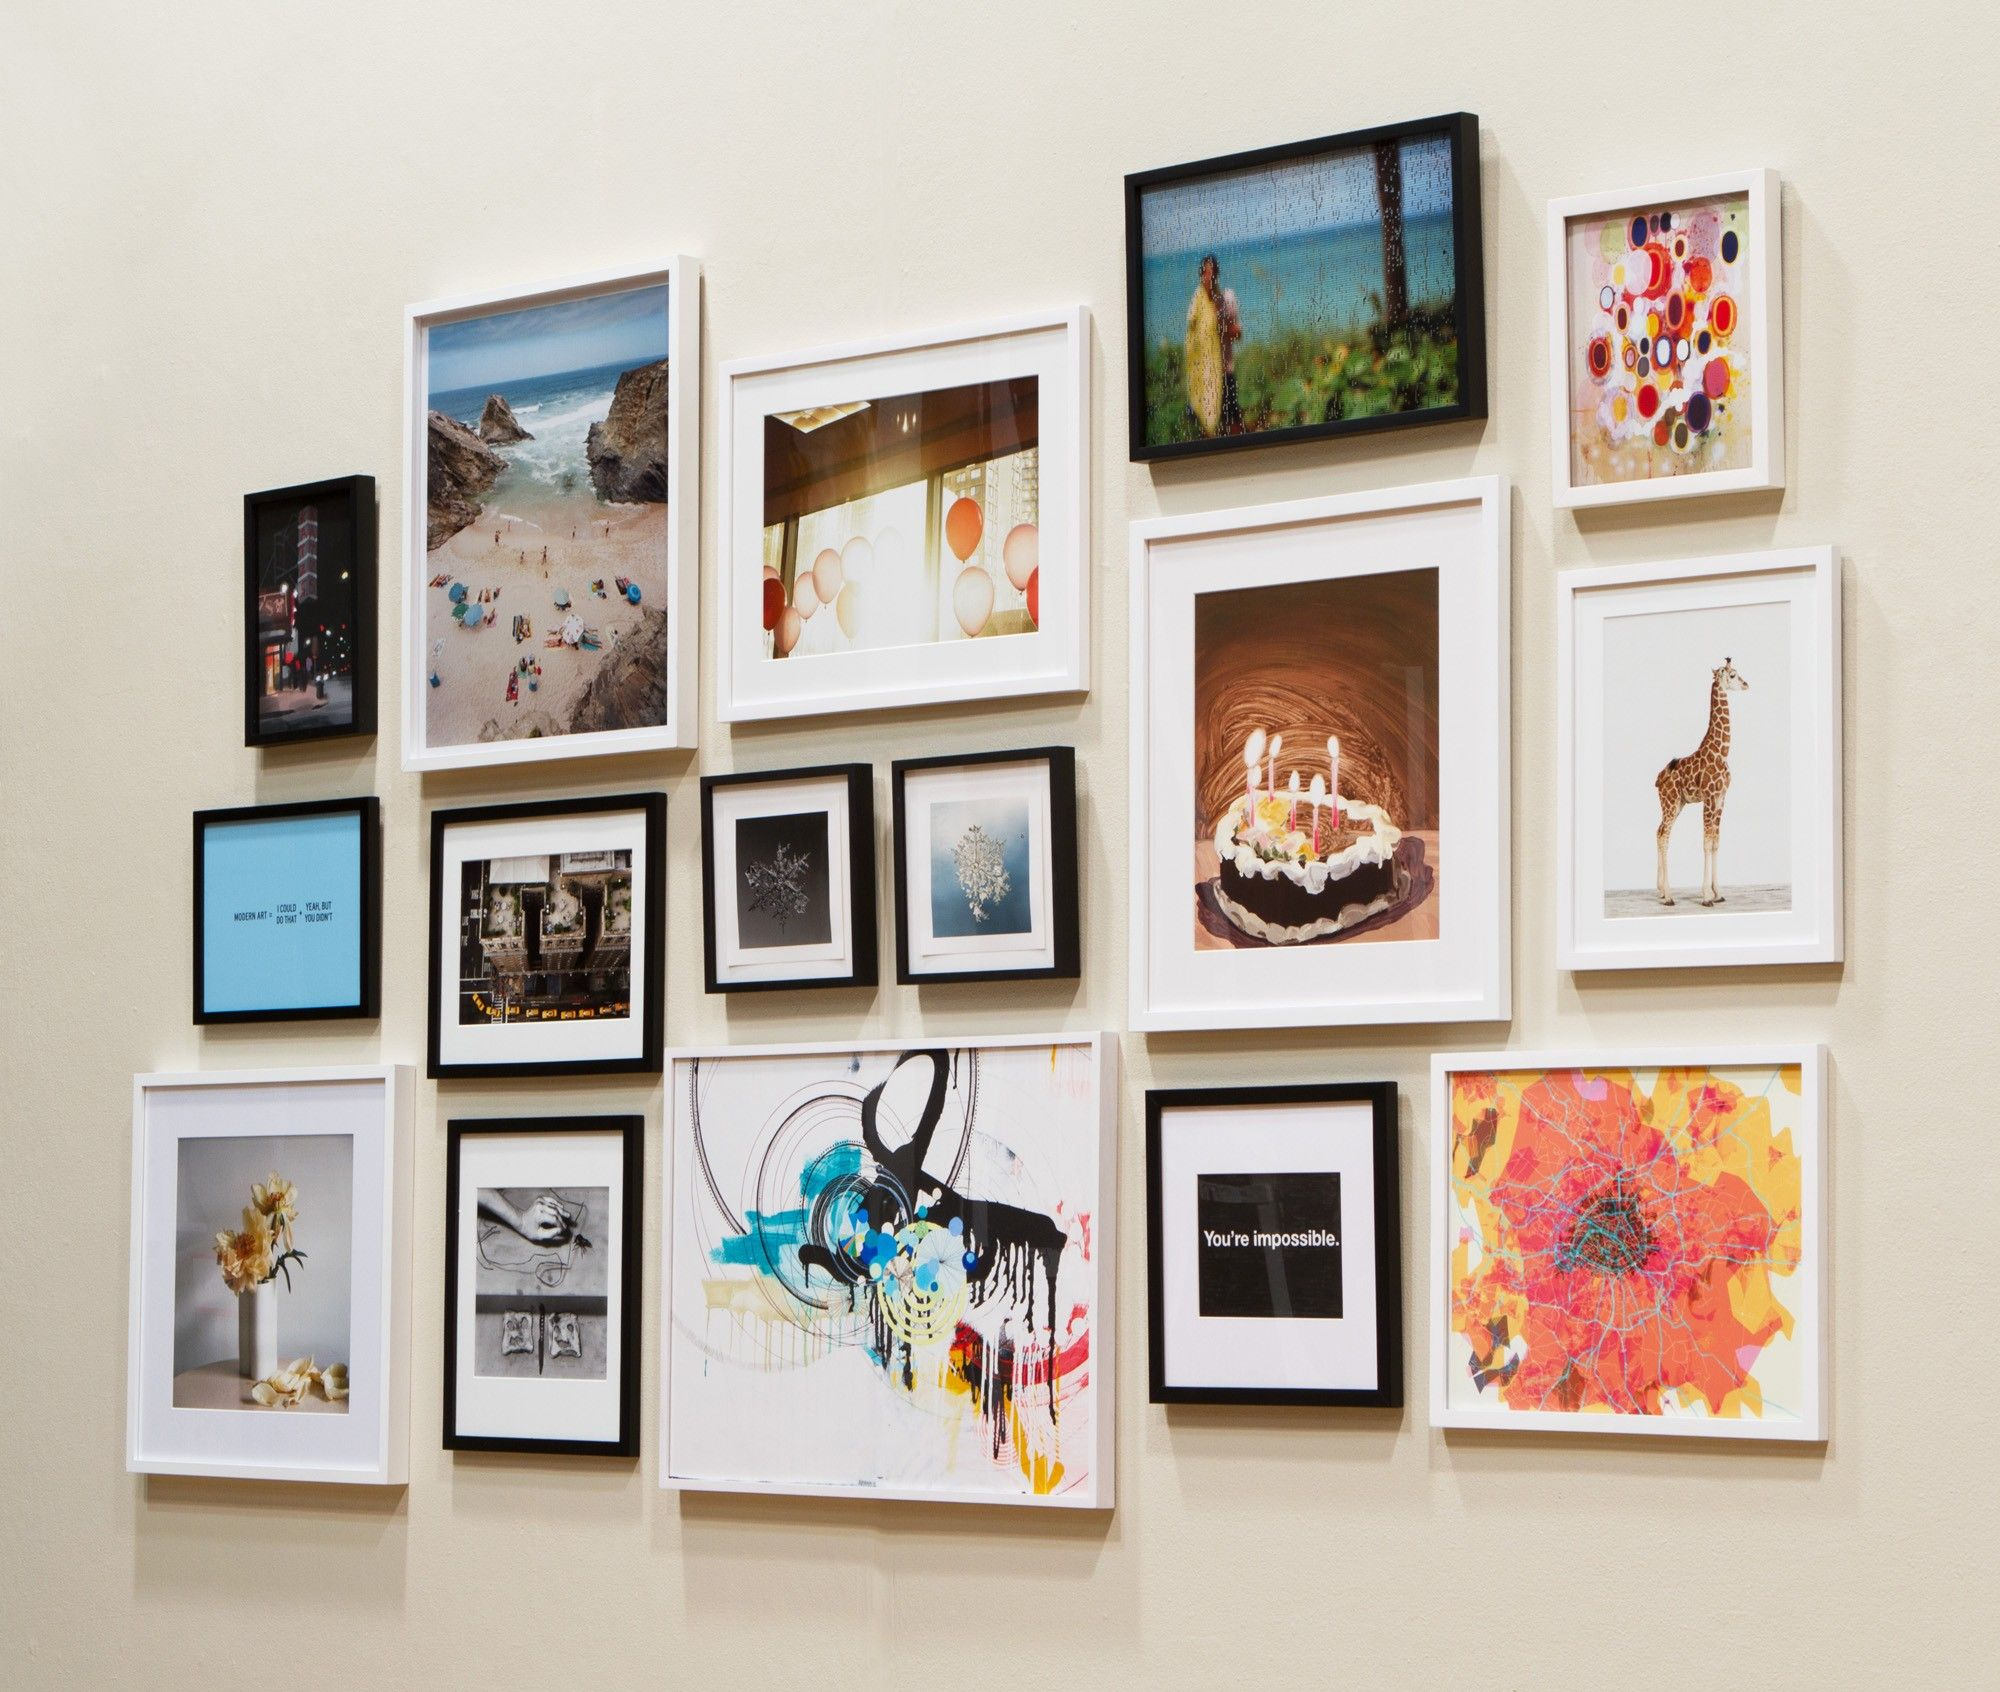 Color of art gallery walls - Gallery Wall Love The Mix Of Frame Colors Same Size Frames With And Without